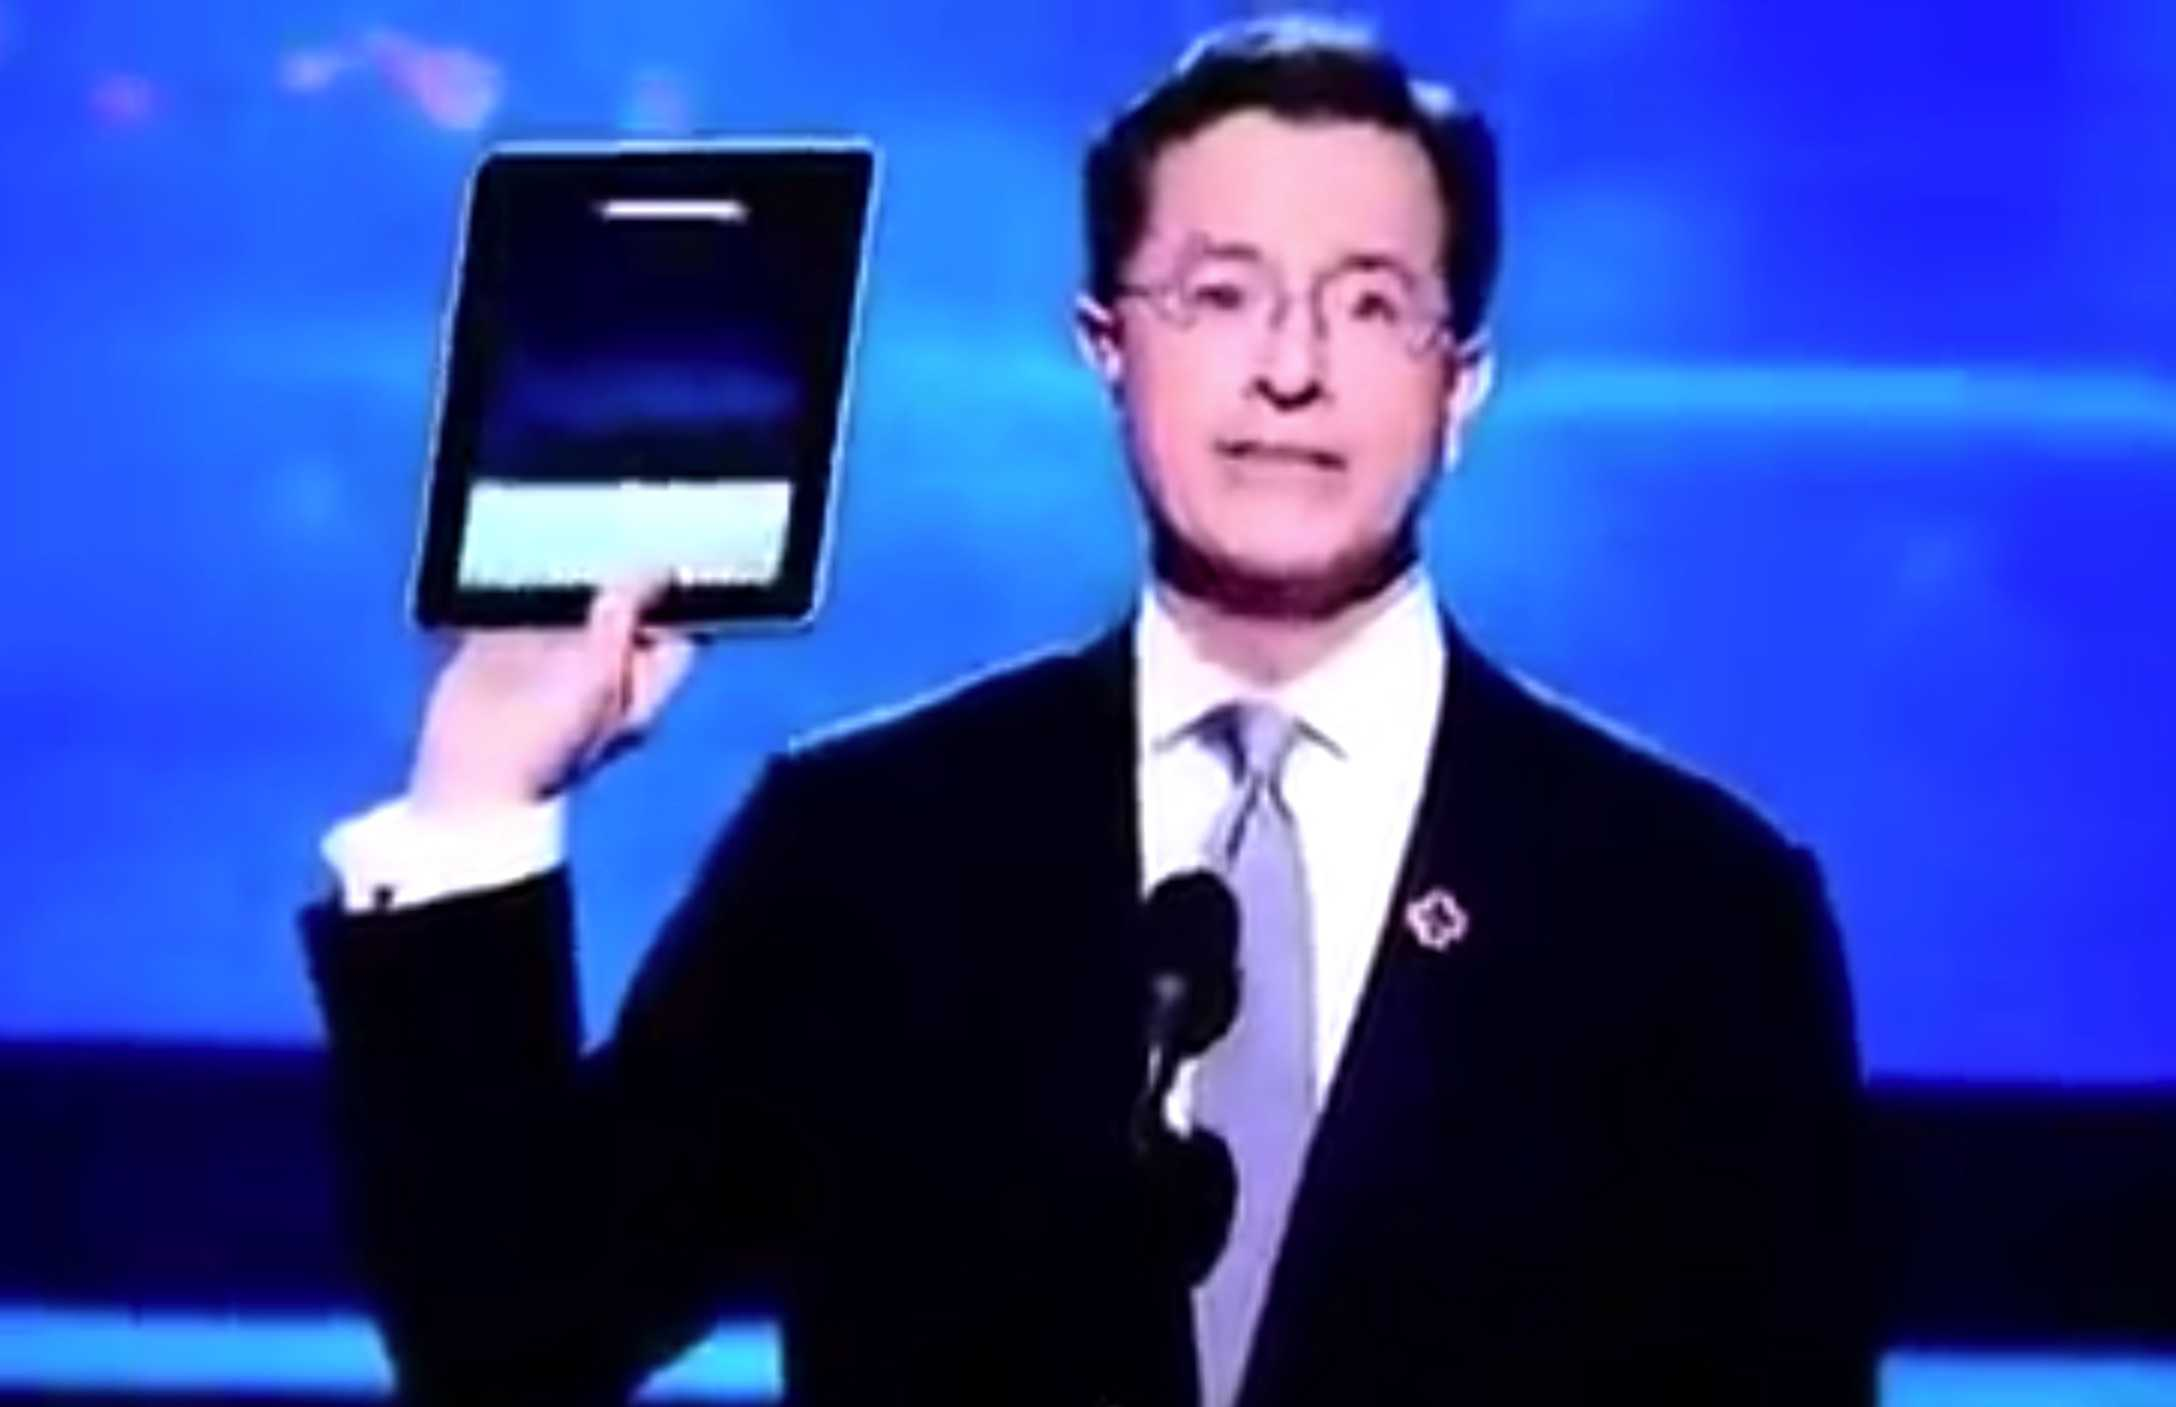 Stephen Colbert shows off a prerelease iPad during the Grammy Awards show.